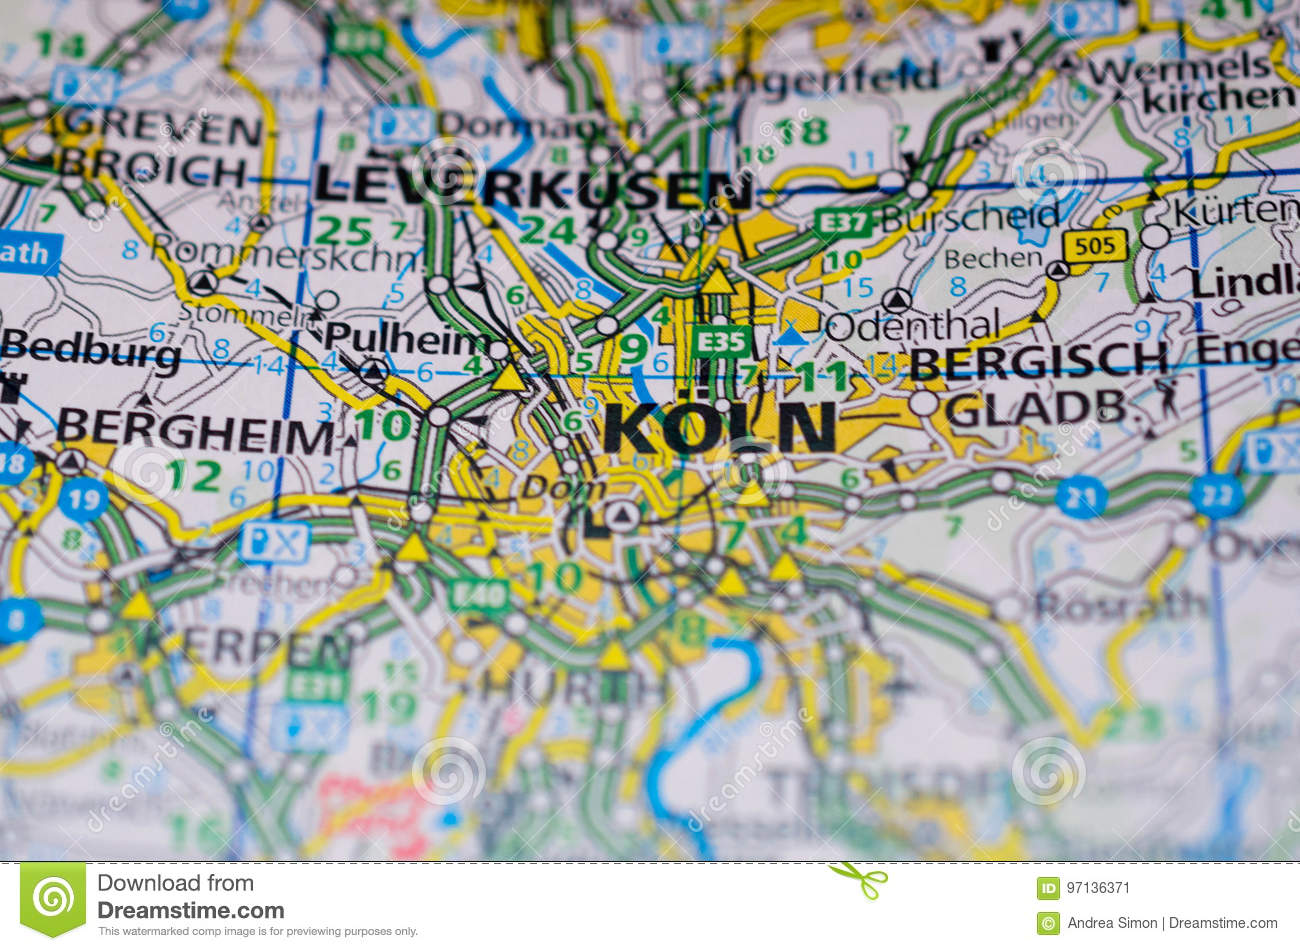 Map Of Germany Showing Cologne.Cologne On Map Stock Image Image Of Transport Street 97136371